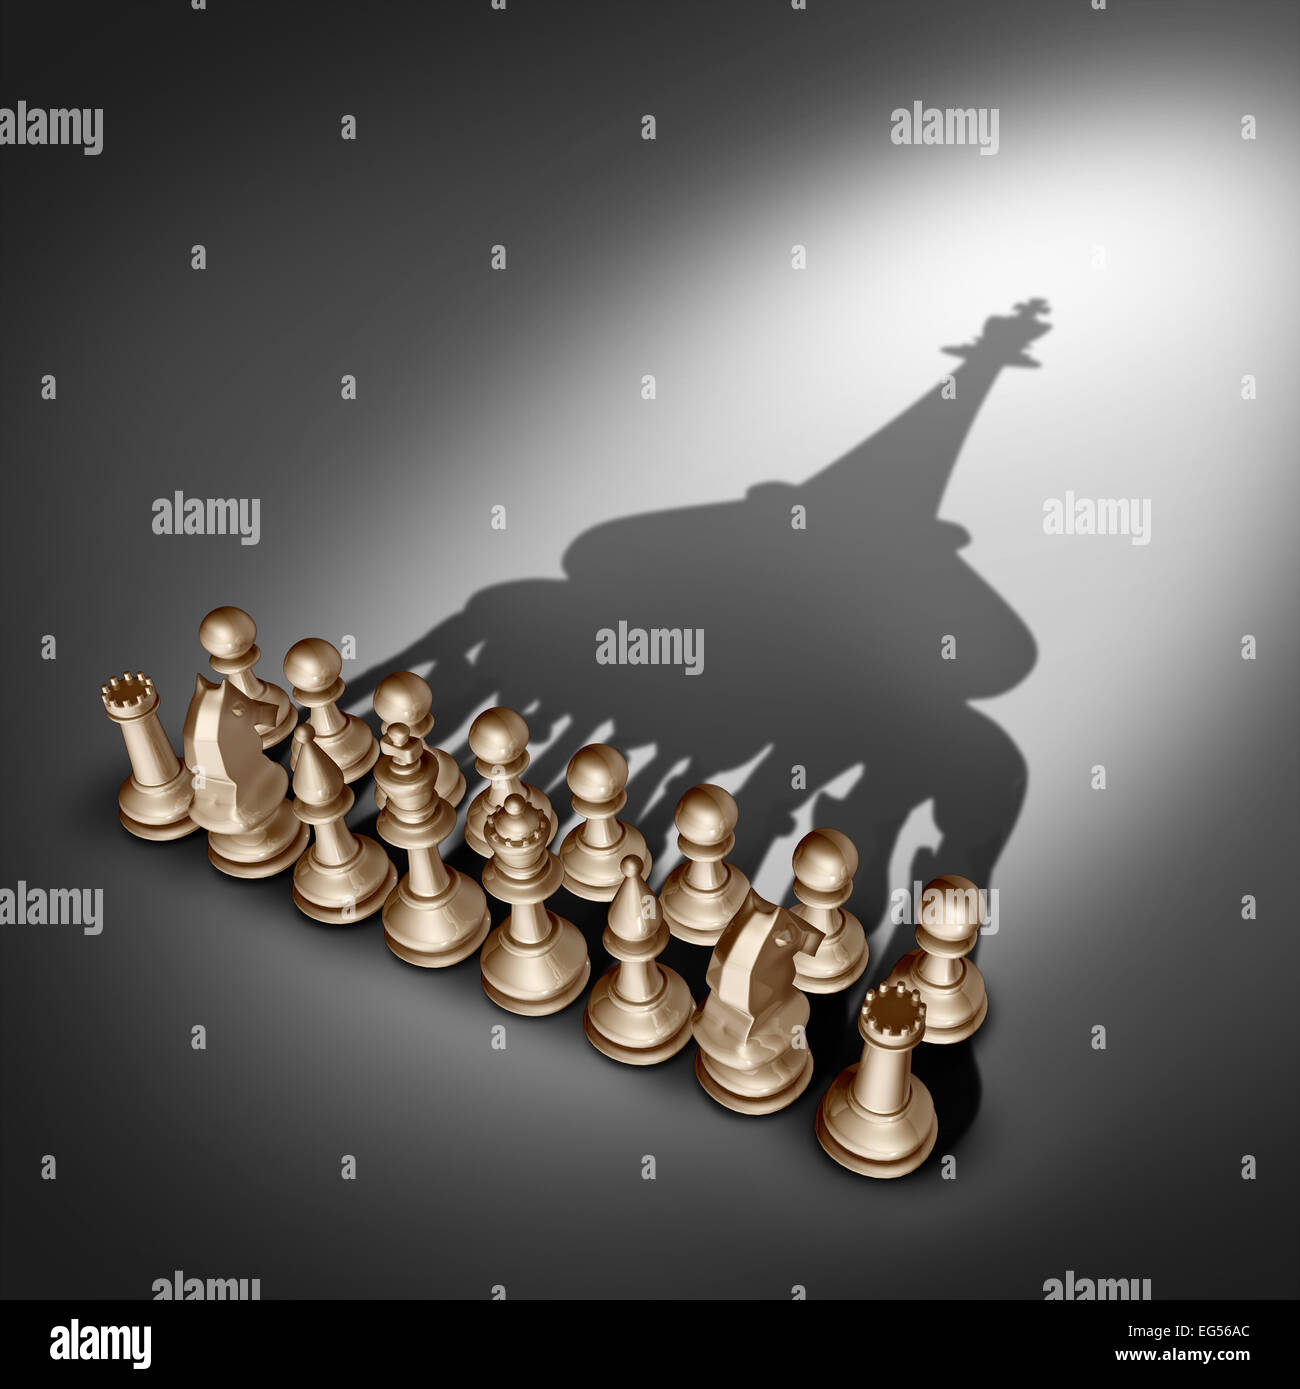 Company leadership and team management vision as a business group concept with chess set pieces joining and working - Stock Image